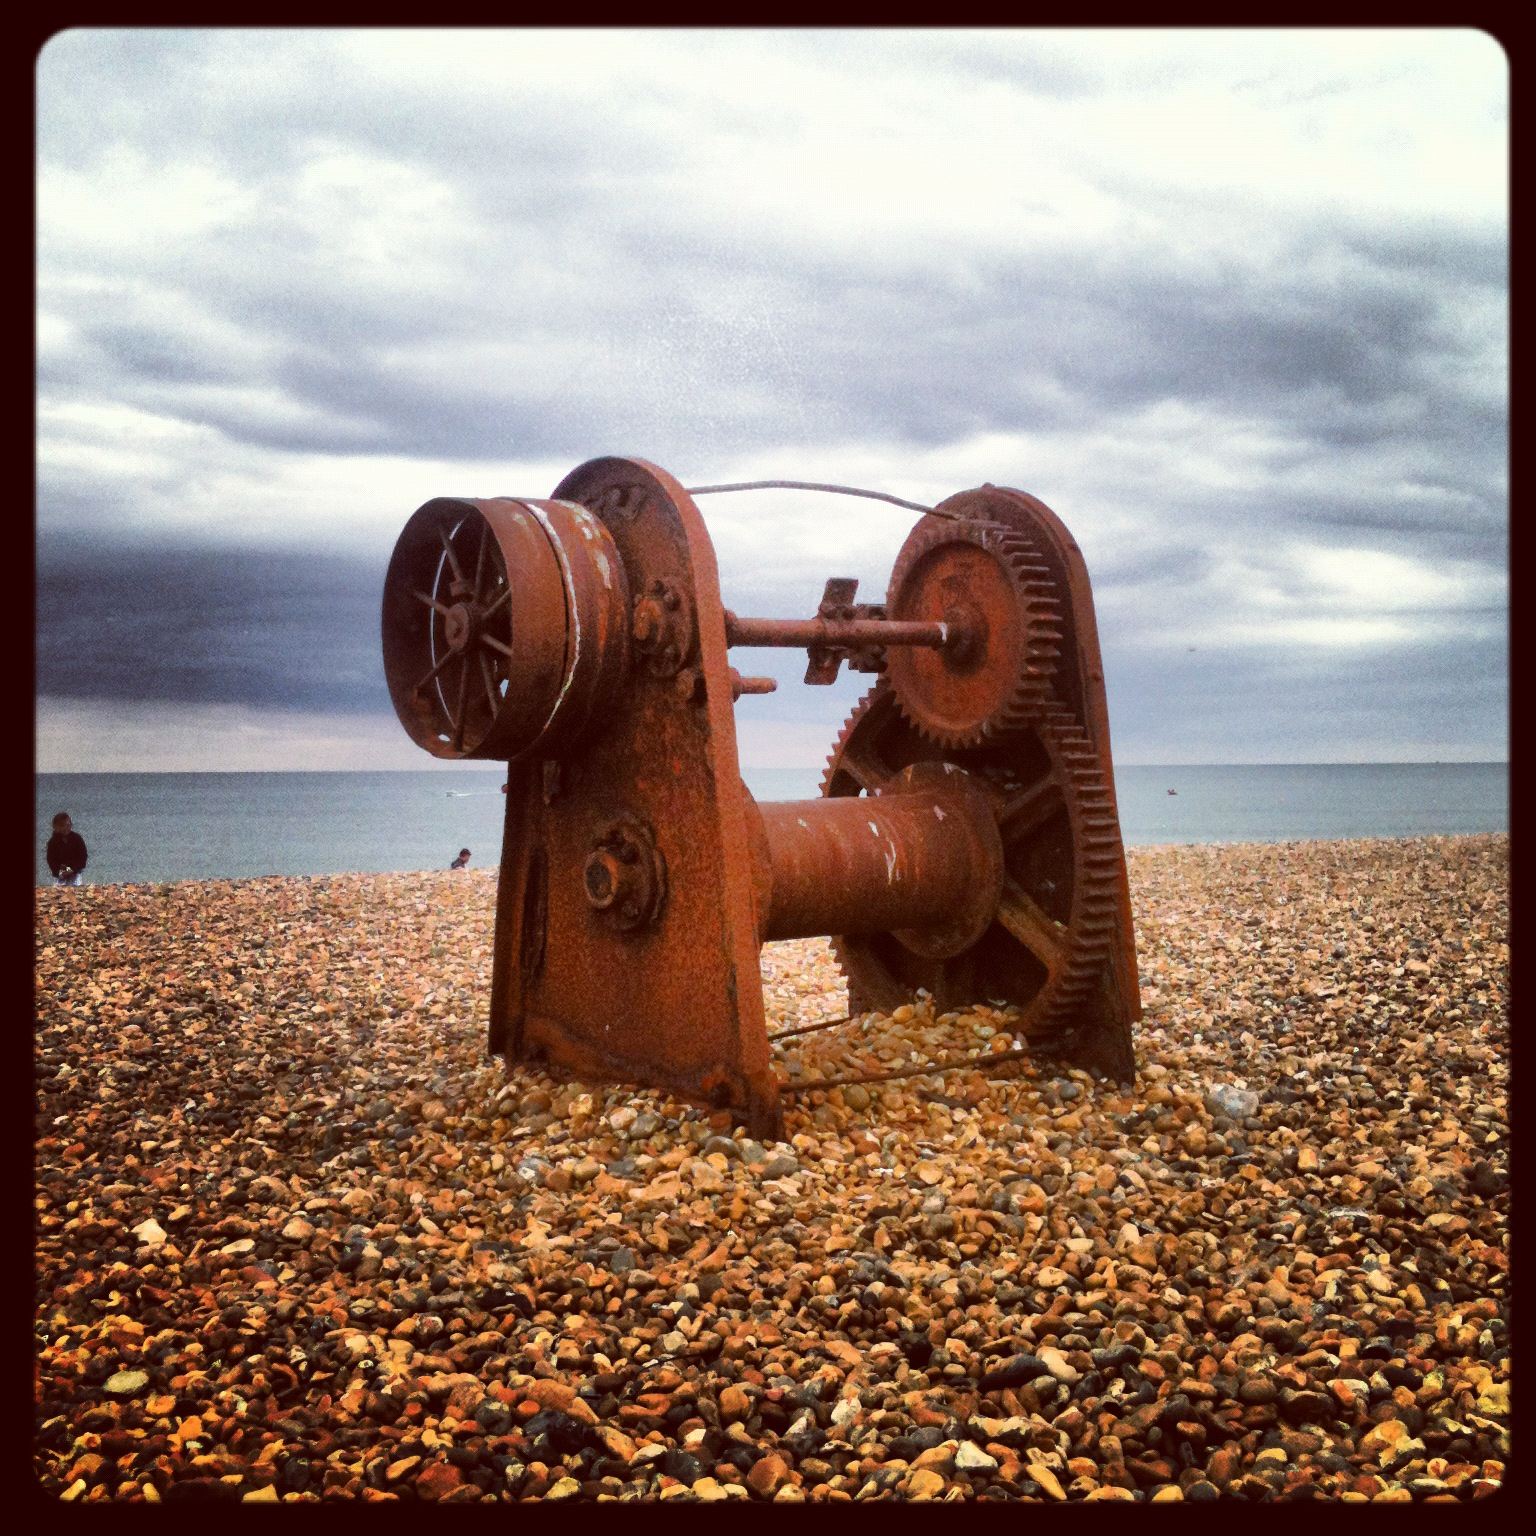 Brighton II: A Rusty Winch